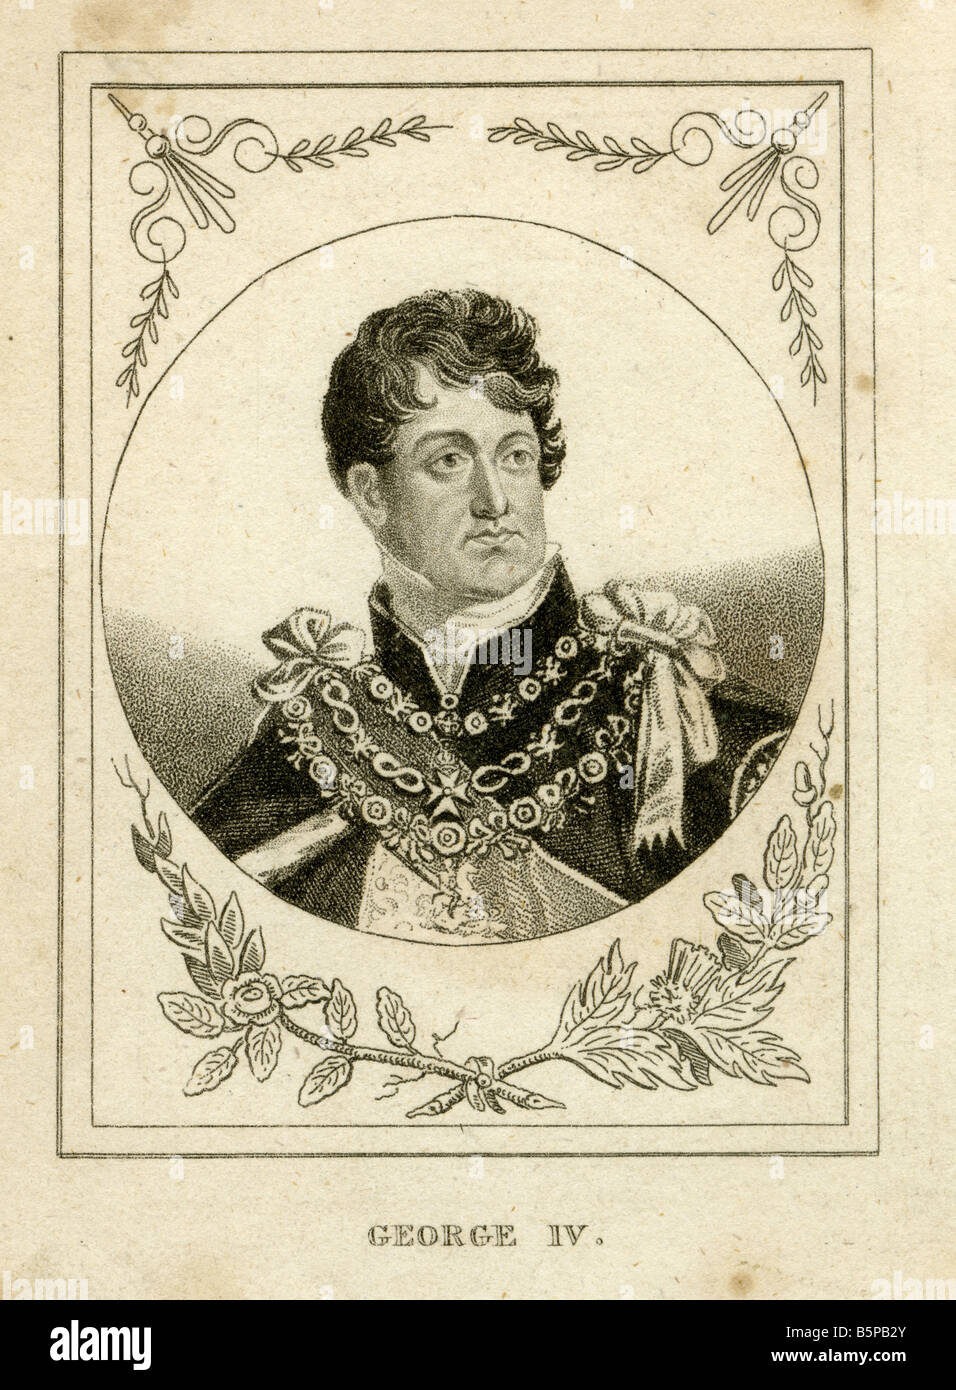 Antique engraving of George IV. - Stock Image